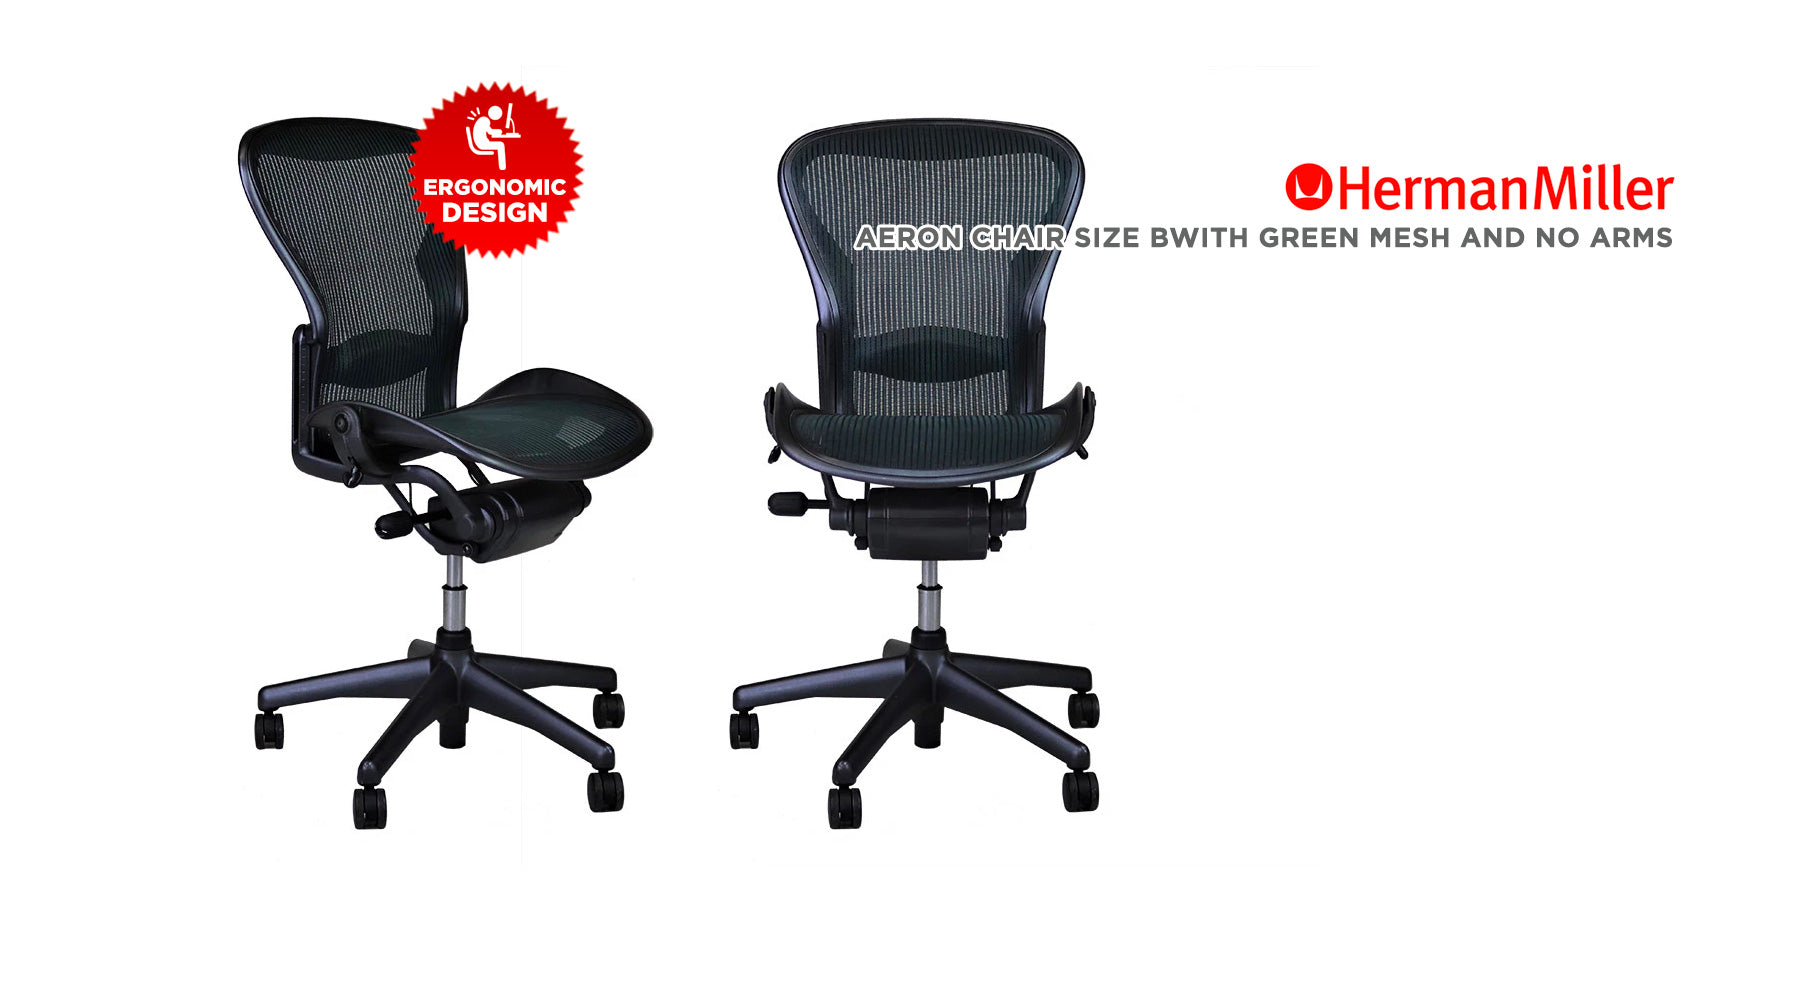 Peachy 2Ndhnd Com Affordable Quality Office Furniture 2Ndhnd Pdpeps Interior Chair Design Pdpepsorg